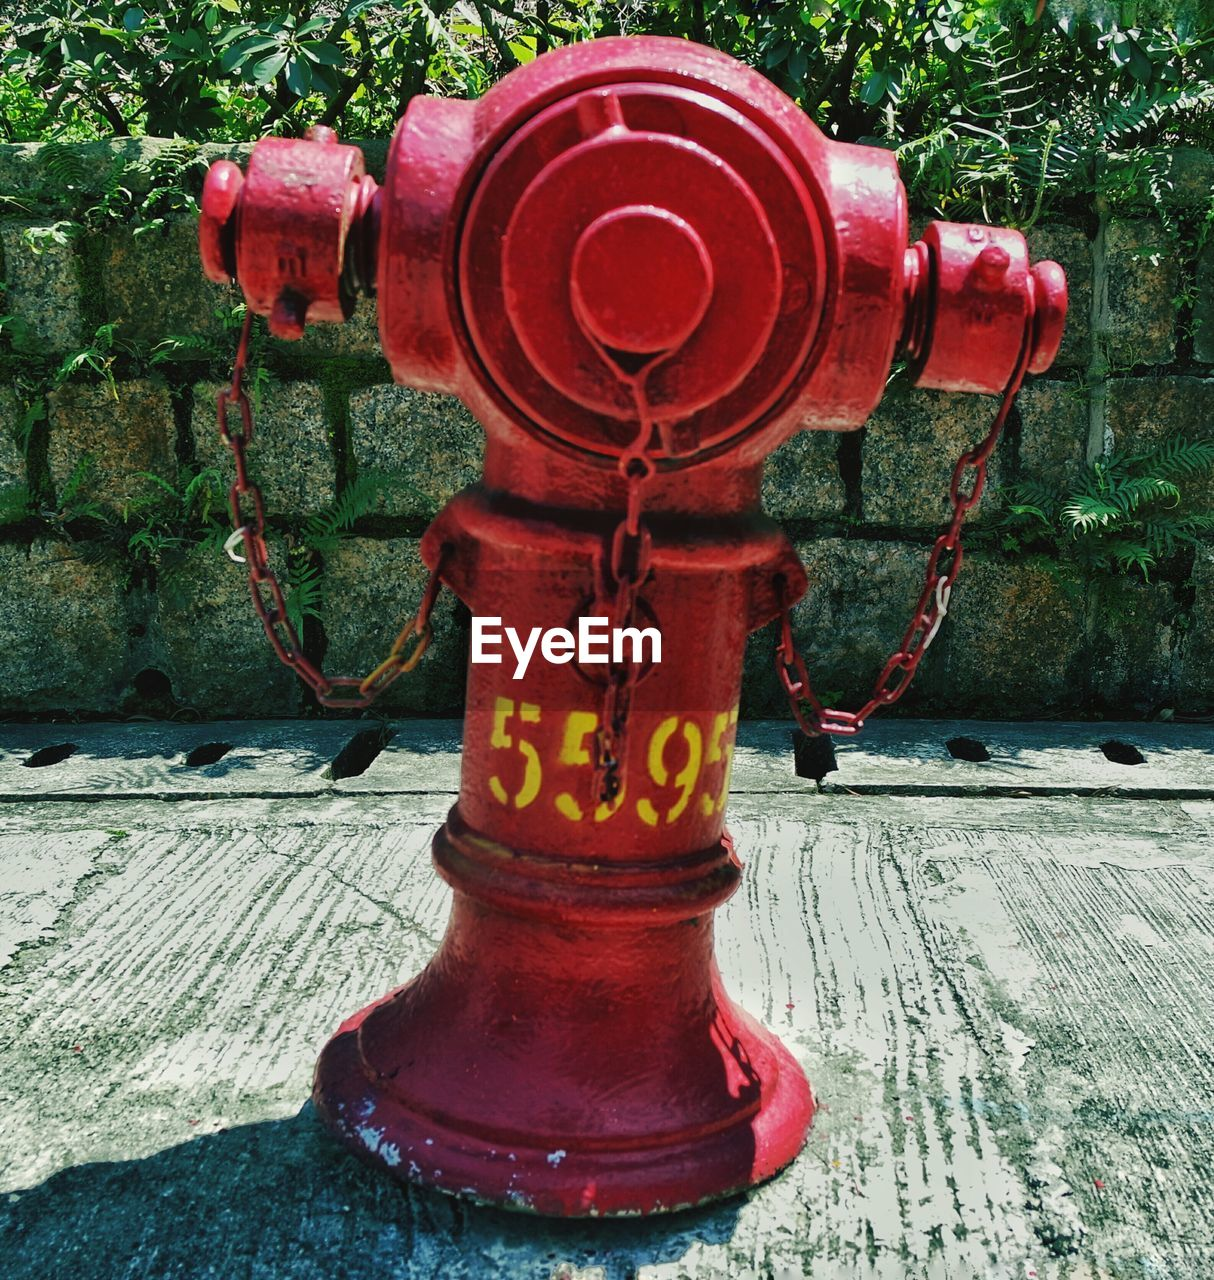 red, fire hydrant, metal, outdoors, text, day, no people, communication, architecture, close-up, tree, building exterior